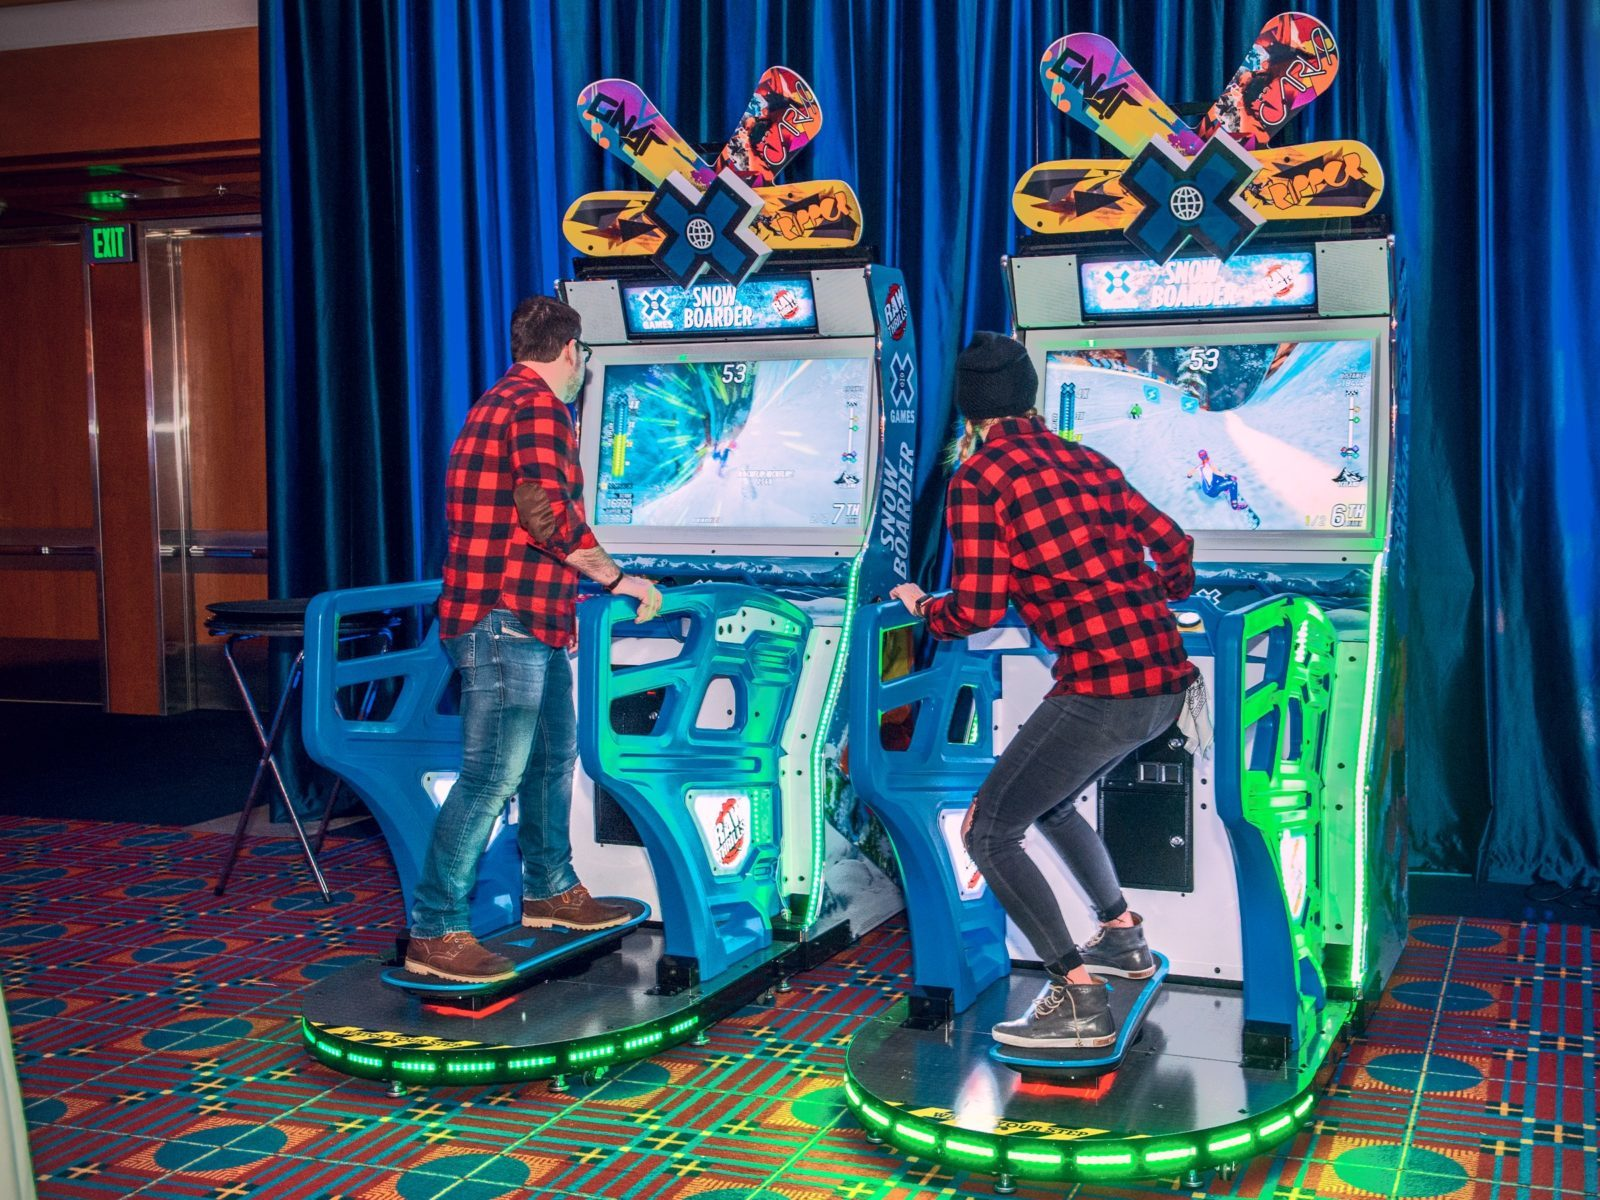 Snowboarder Arcade Game rental